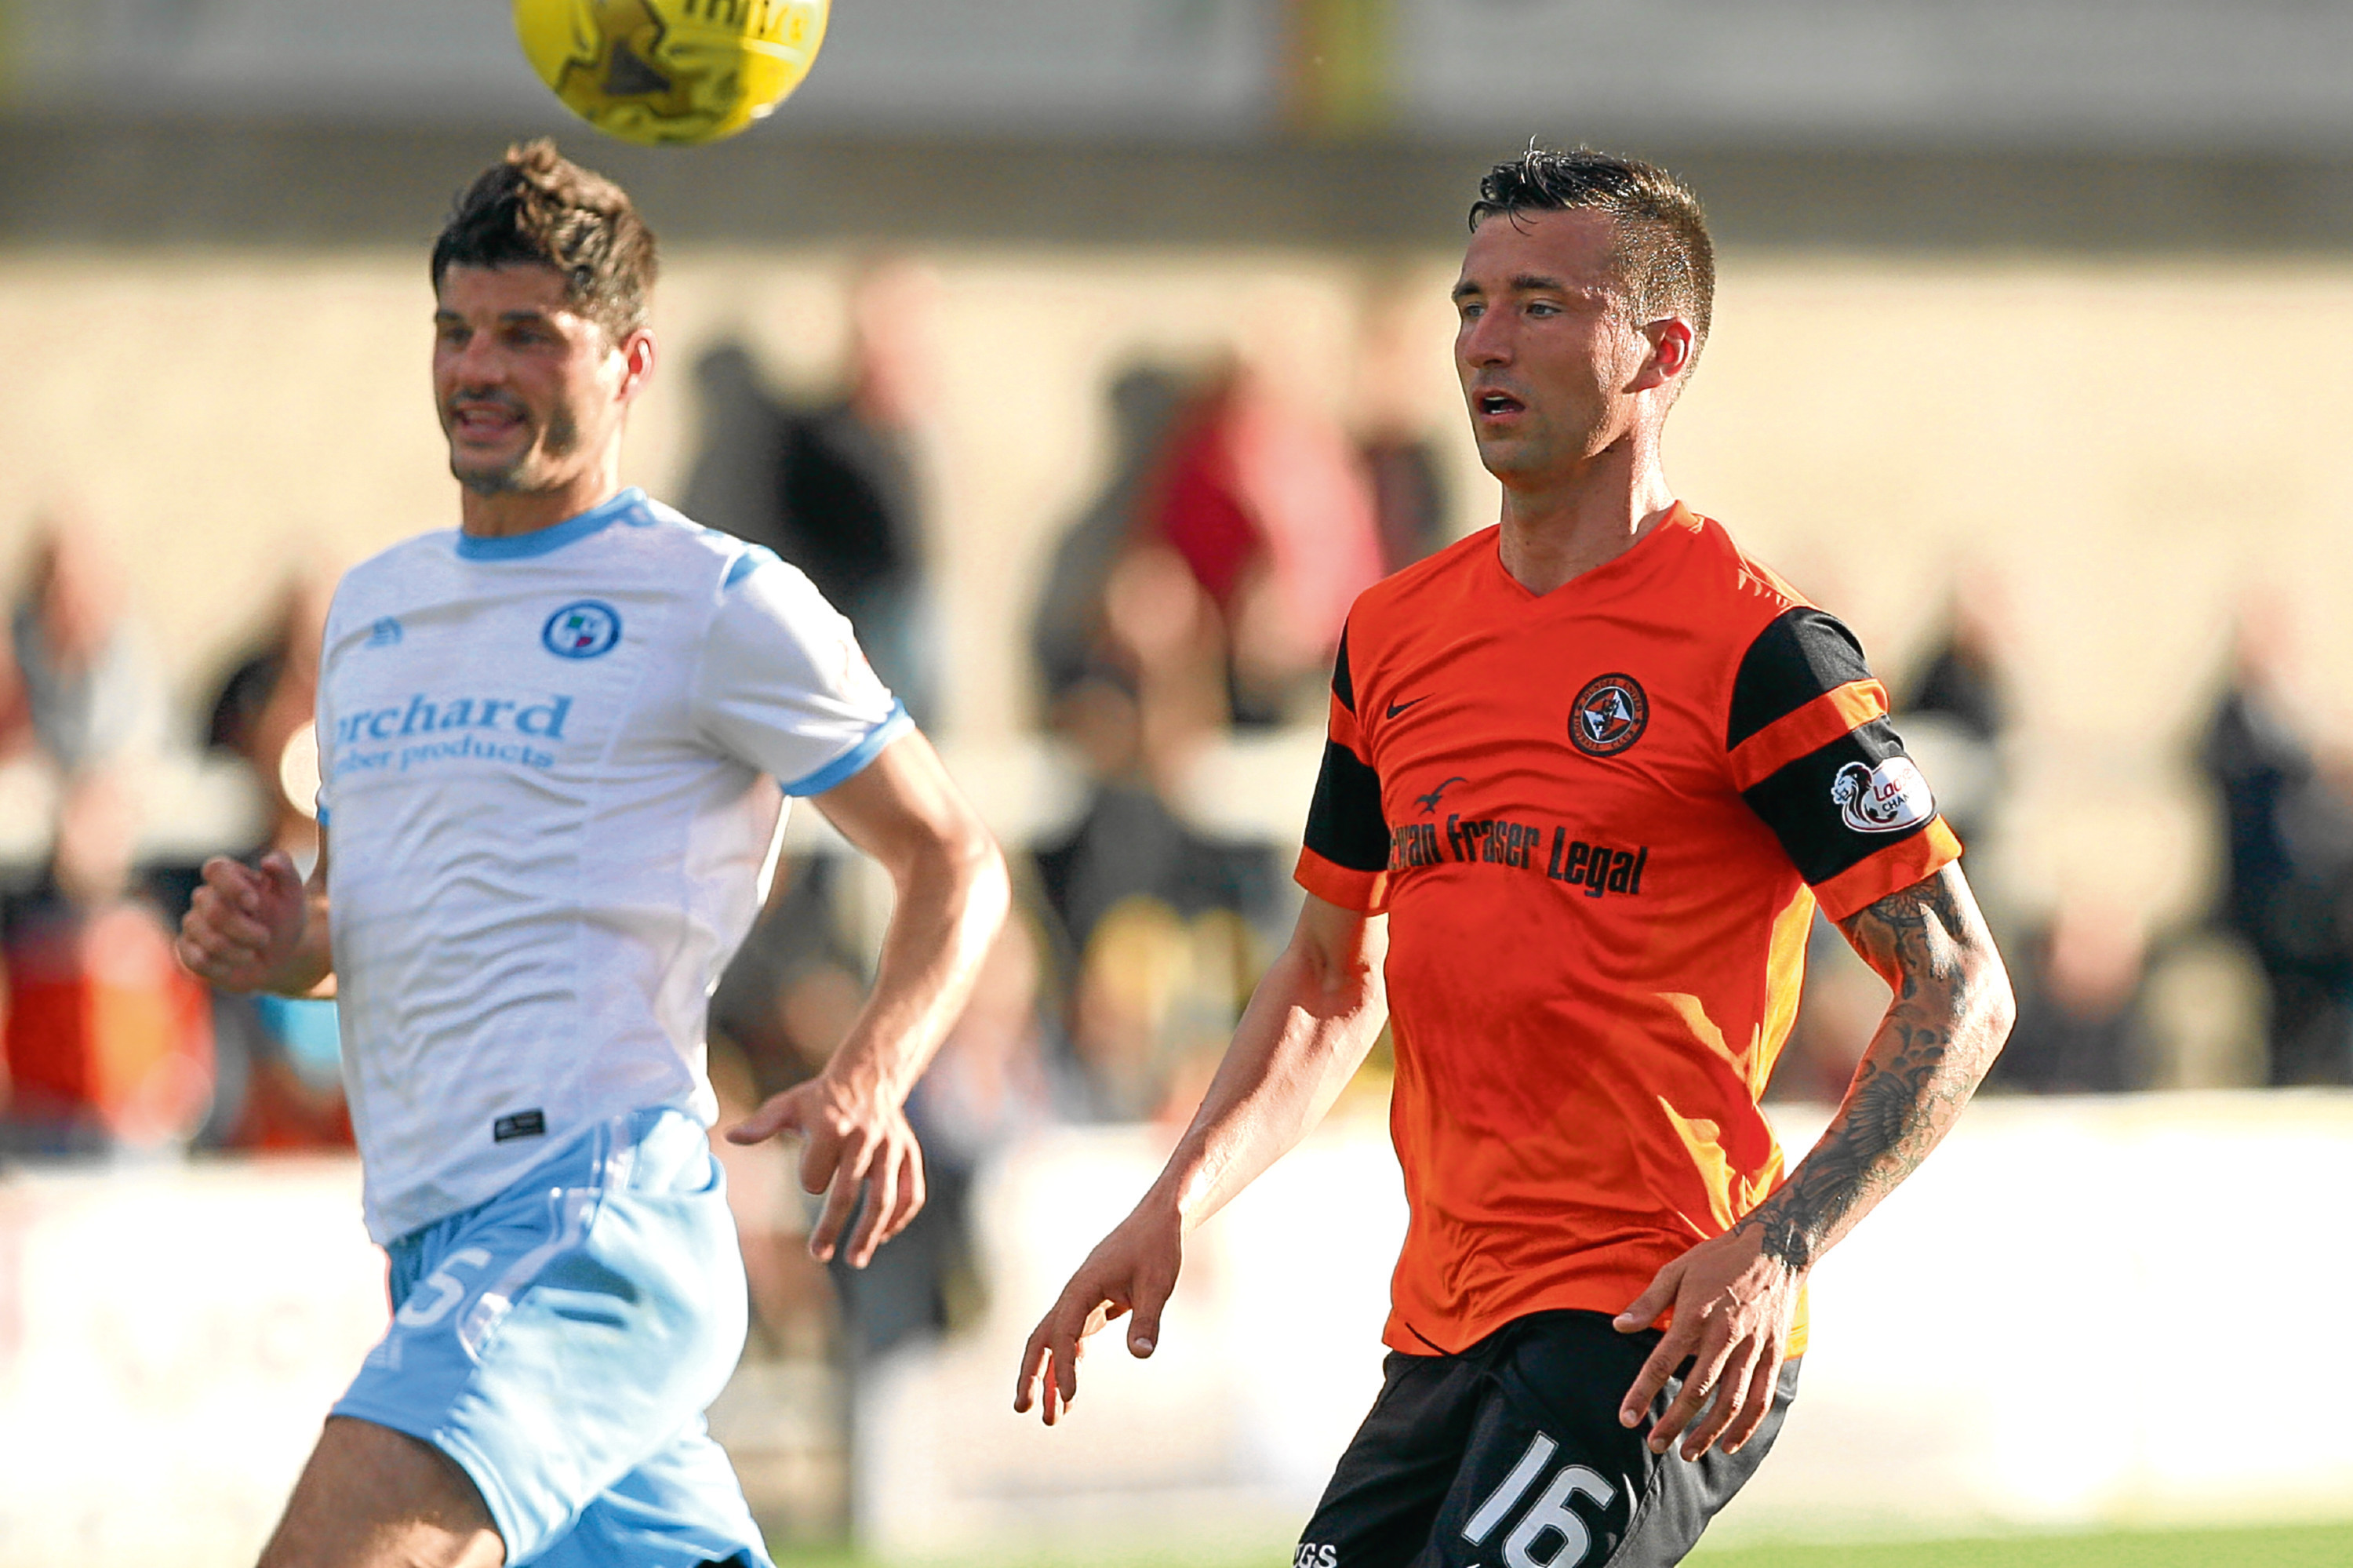 Trialist Alen Ploj missed a few chances as Dundee United were held to 1-1 draw by Forfar in Tuesday night's friendly at Station Park.